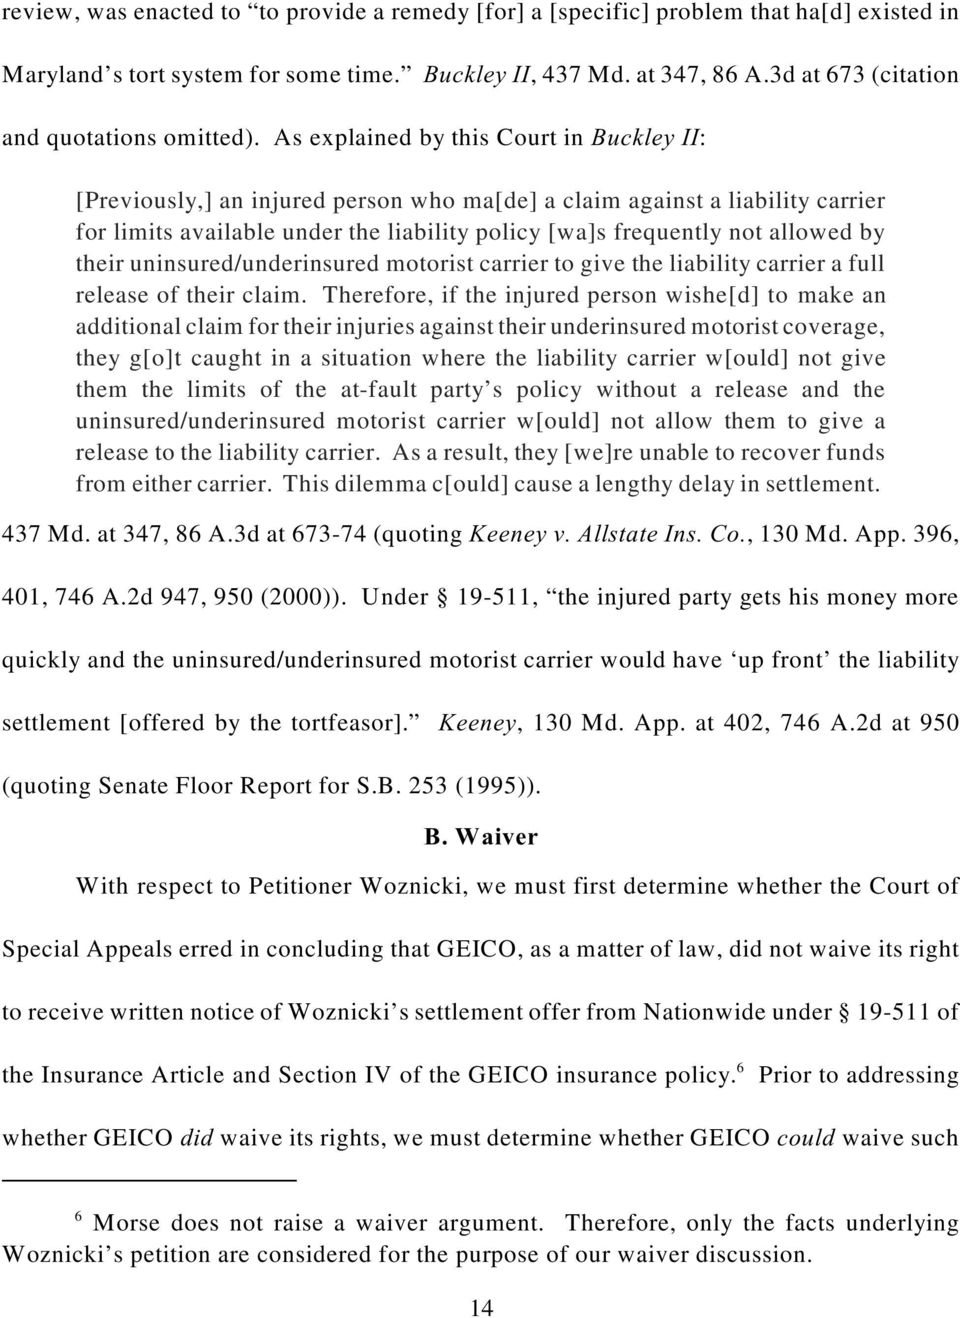 As explained by this Court in Buckley II: [Previously,] an injured person who ma[de] a claim against a liability carrier for limits available under the liability policy [wa]s frequently not allowed